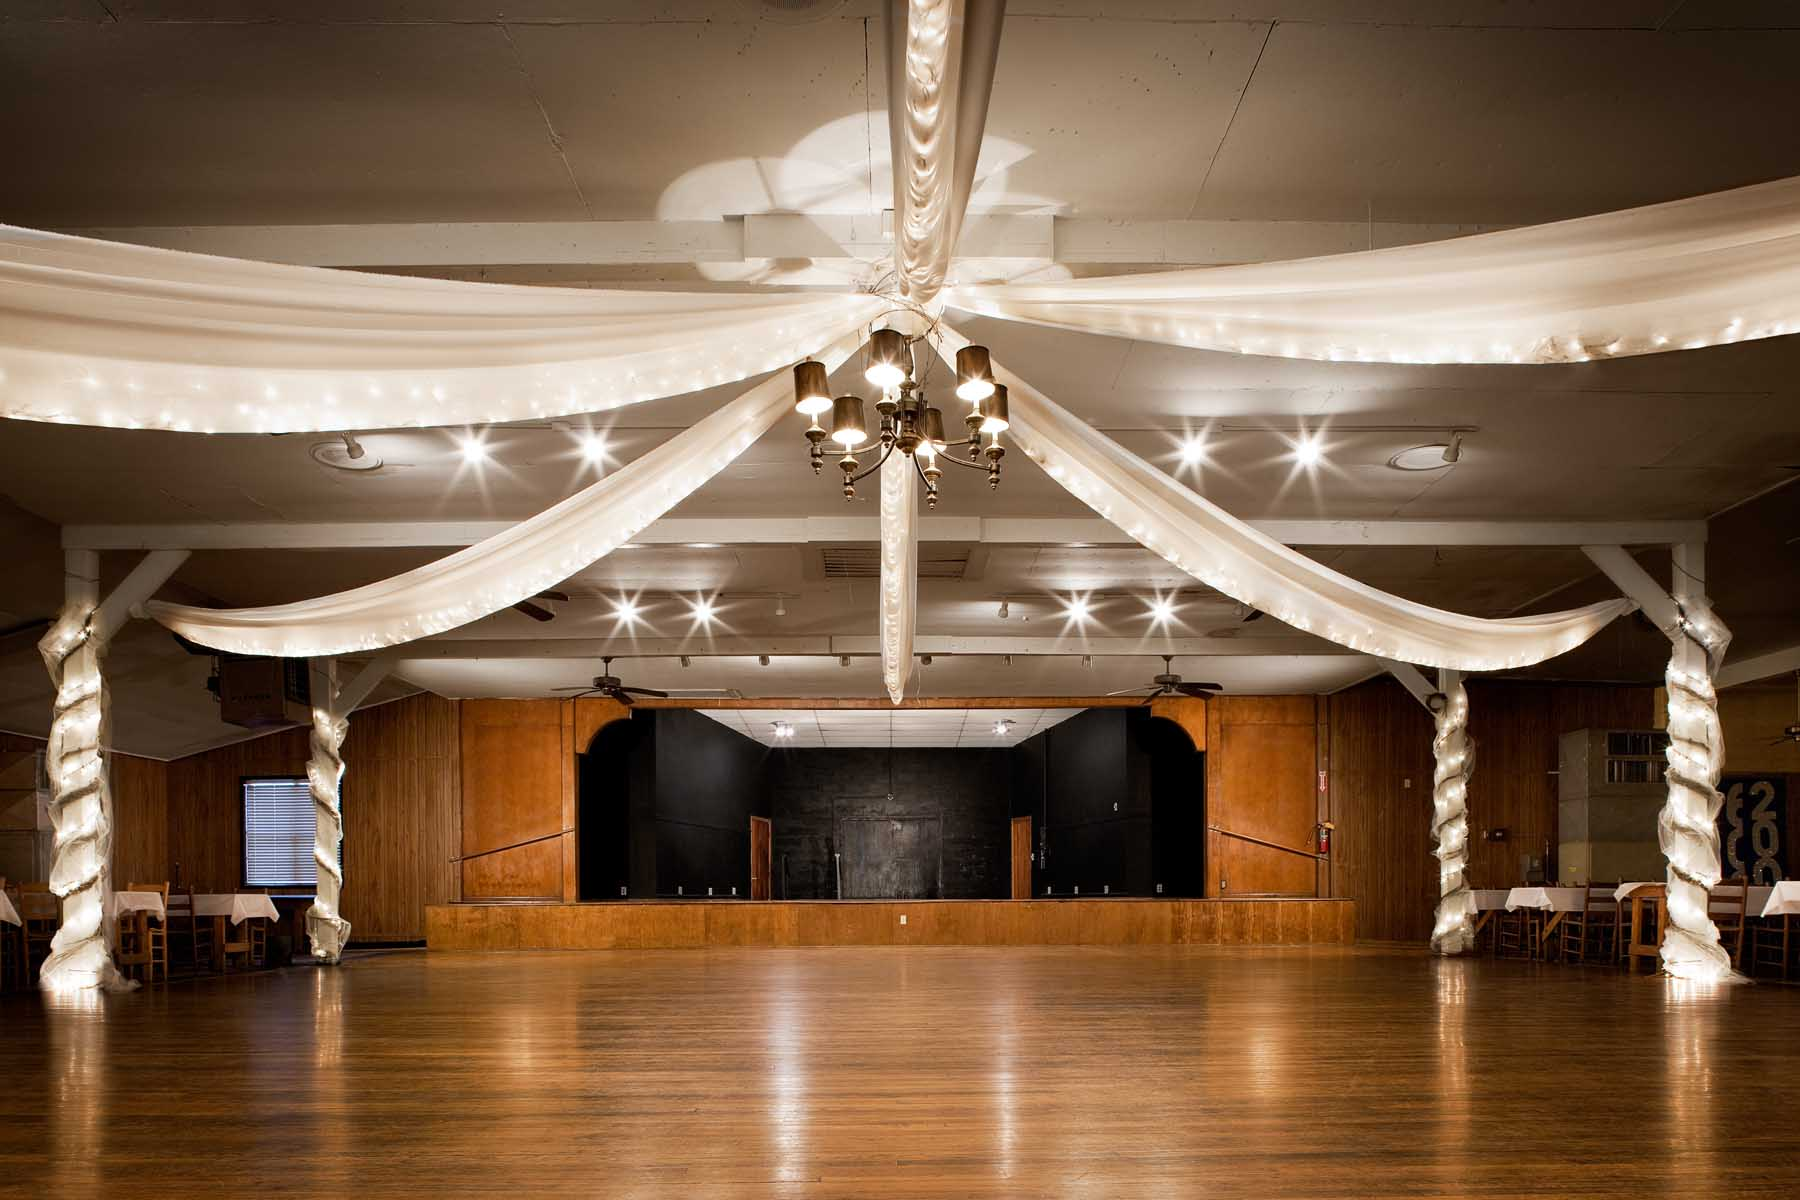 TEXAS DANCEHALLS, CLUB WESTERNER